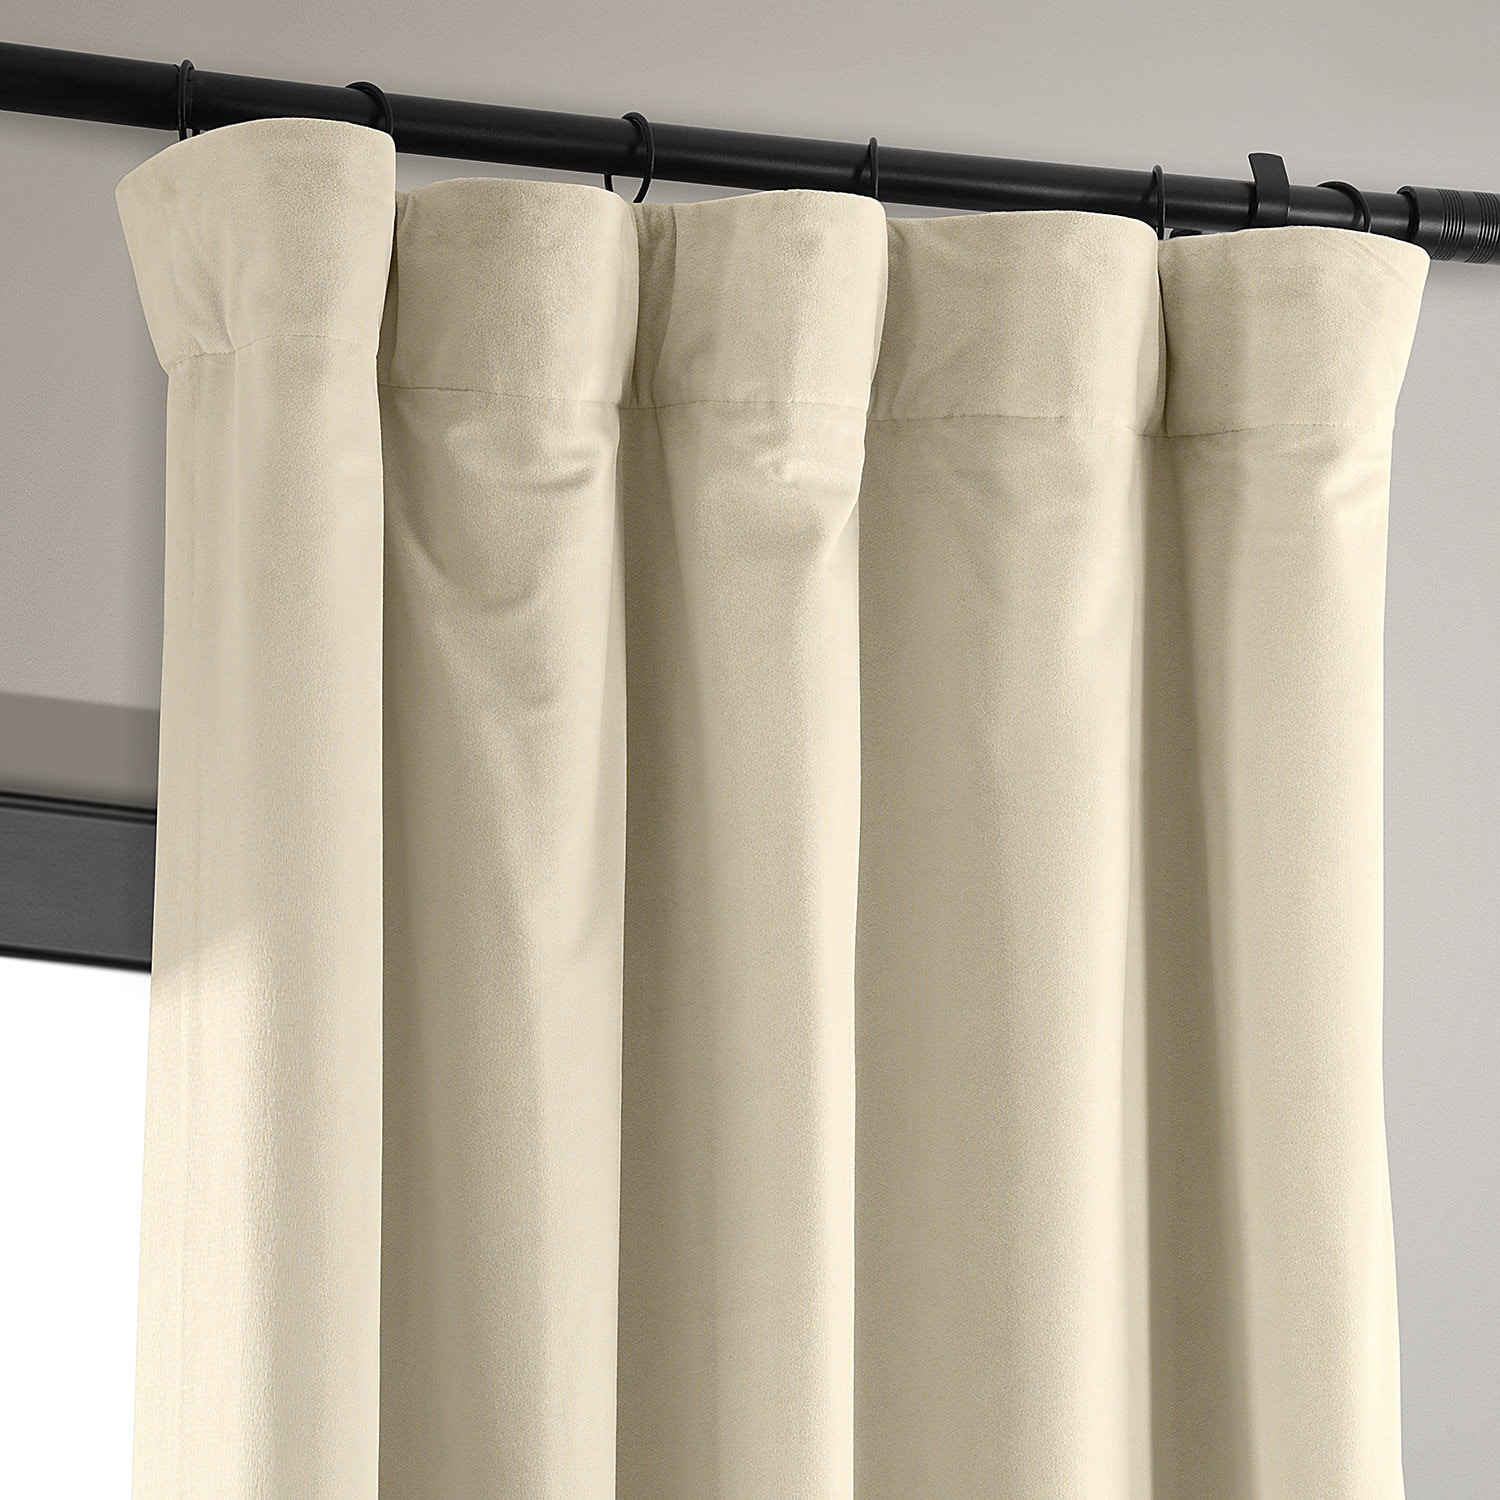 Signature Alabaster Beige Blackout Velvet Curtain